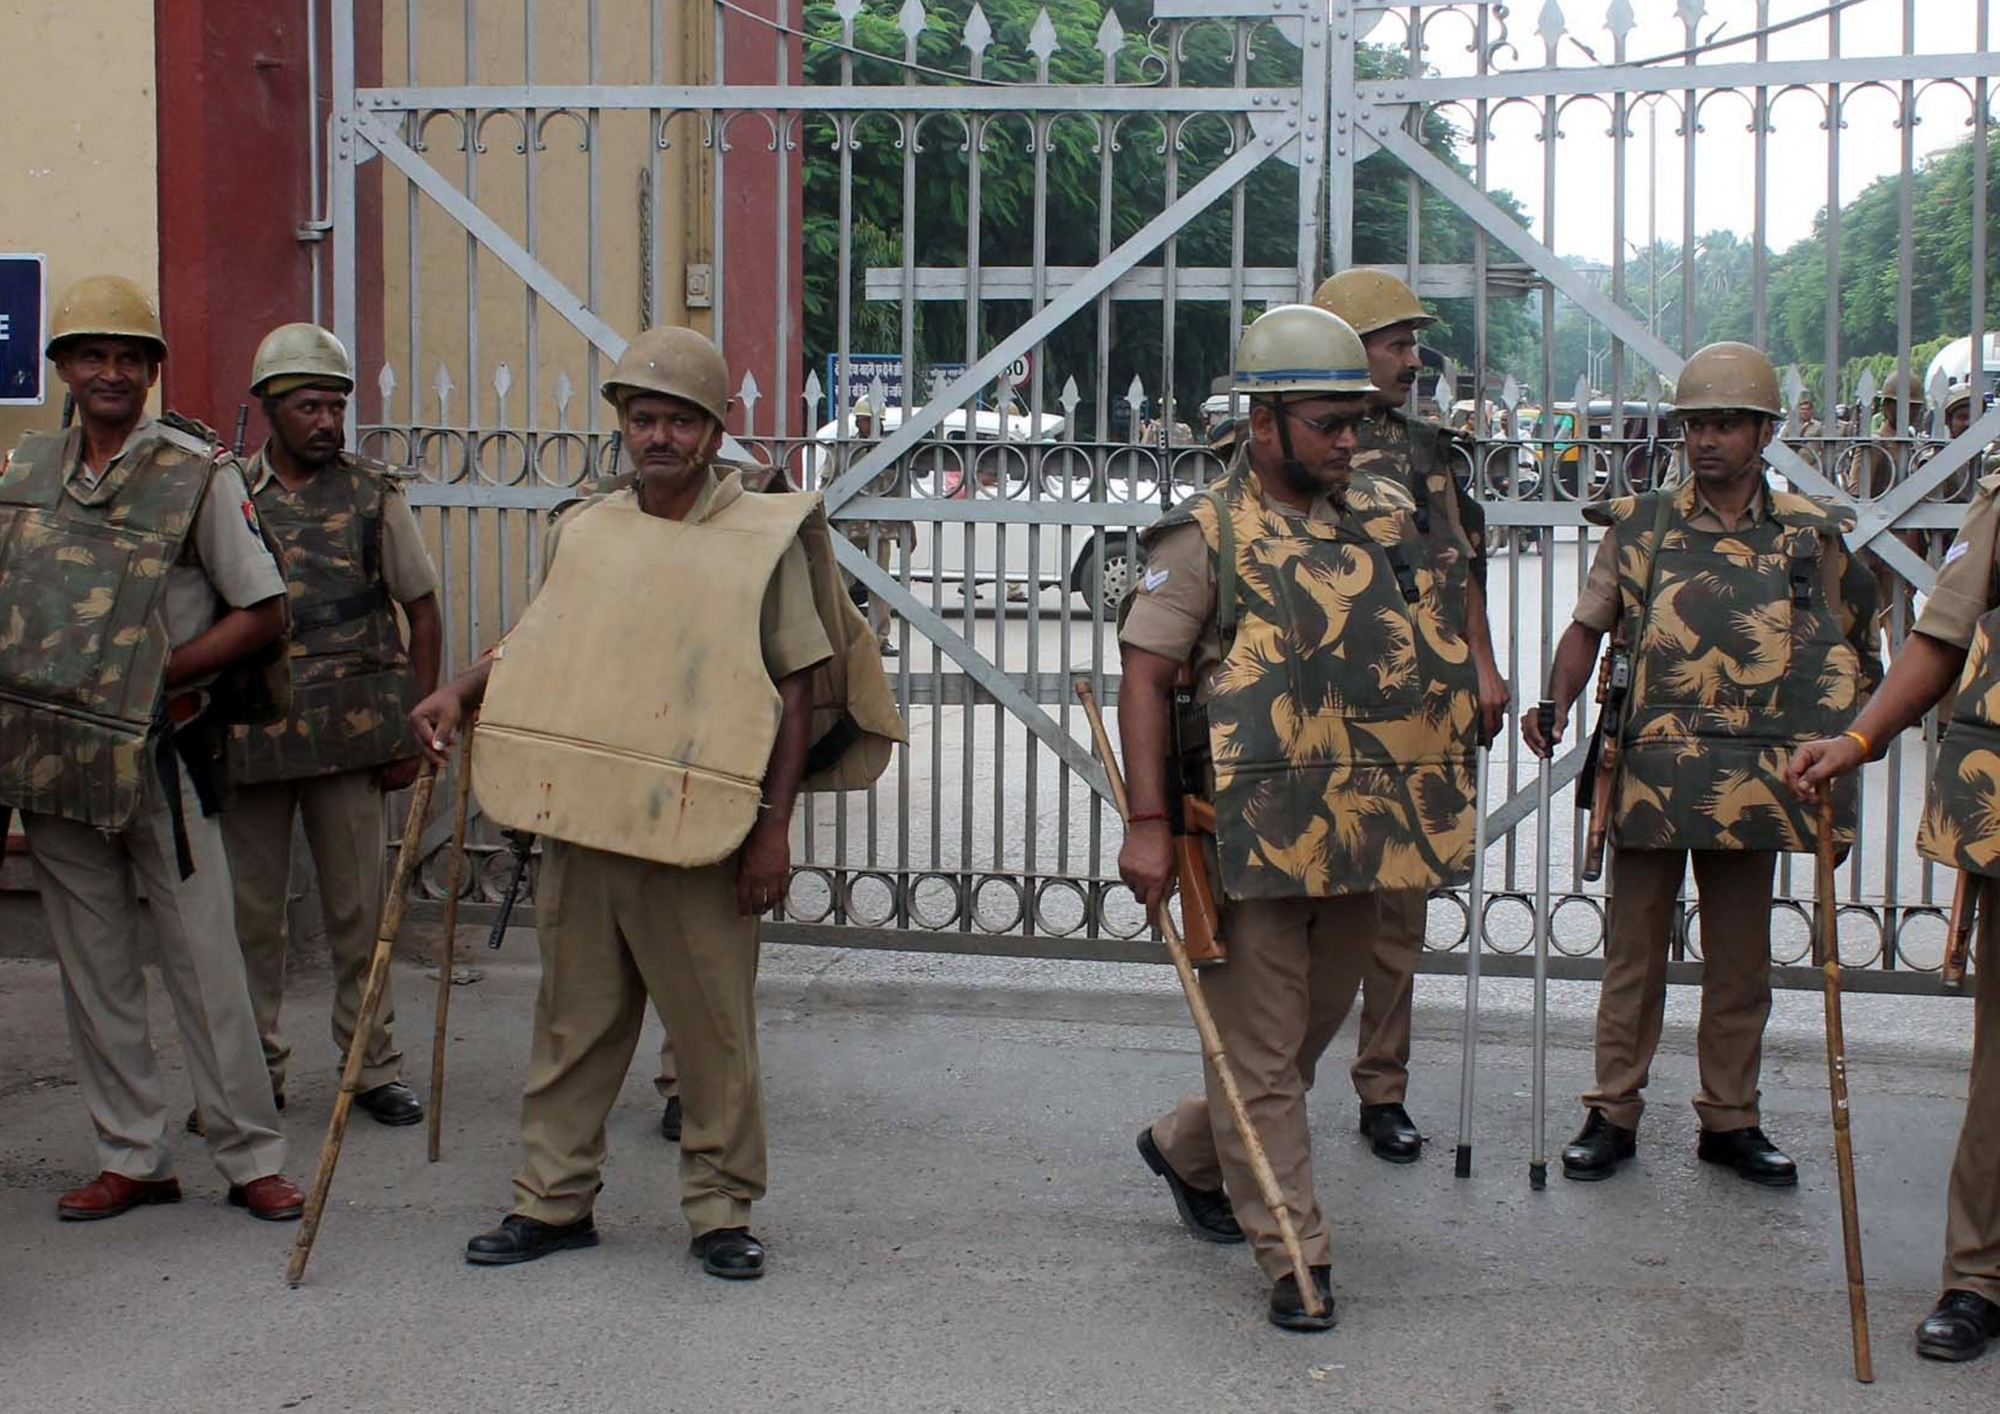 Security beefed up outside the Banaras Hindu University after police lathicharged the students while they were agitating against the molestation of a student inside the campus. Photo credit: IANS.